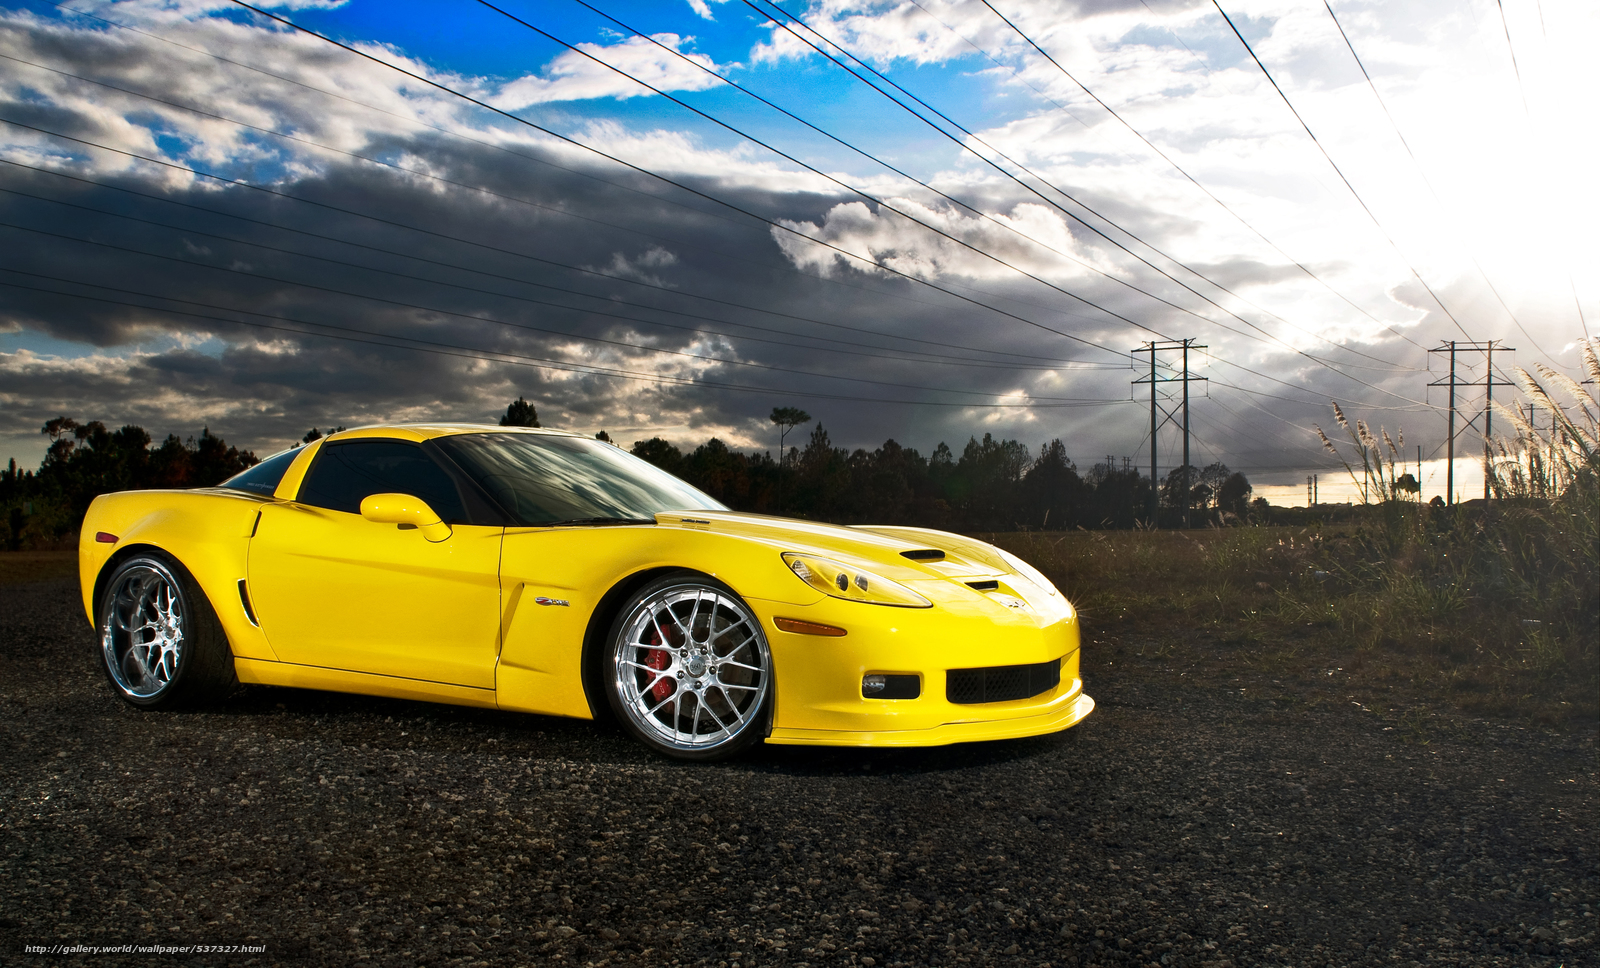 Download wallpaper wide body chevrolet corvette free desktop wallpaper in the resolution 4304x2604 picture 537327